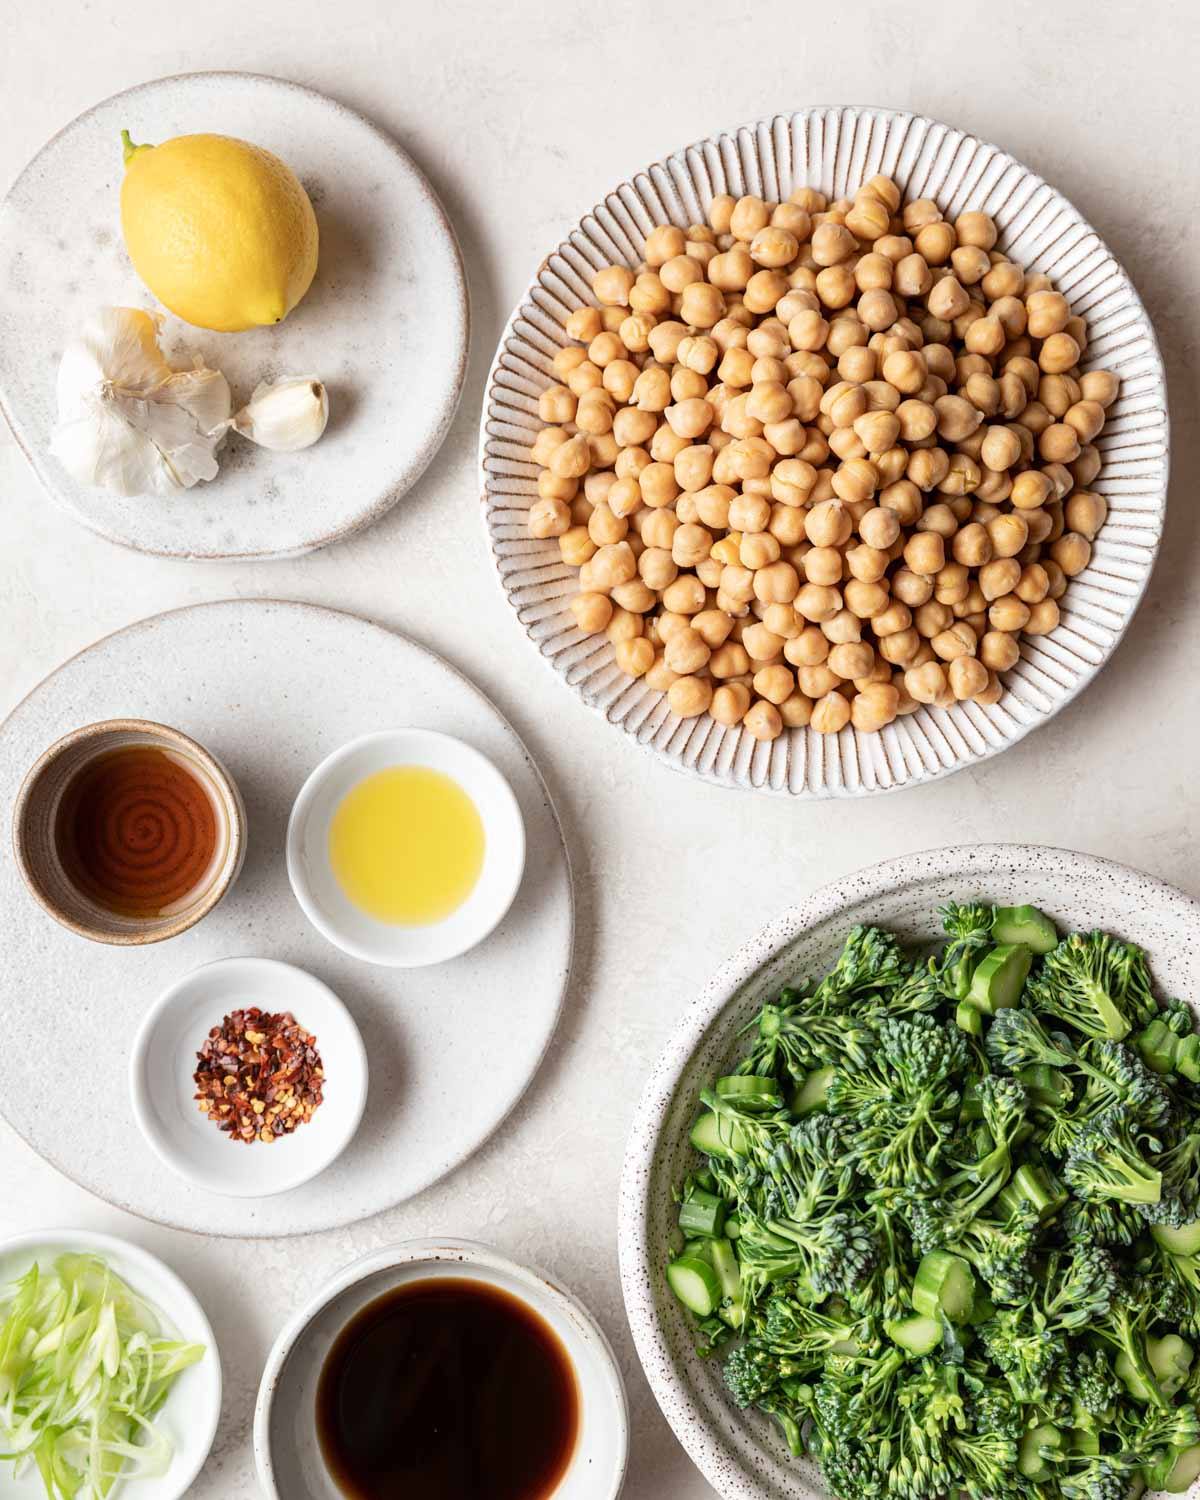 An overhead view of all the ingredients needed for this recipe, including garbanzo beans, chopped broccolini, and seasonings.